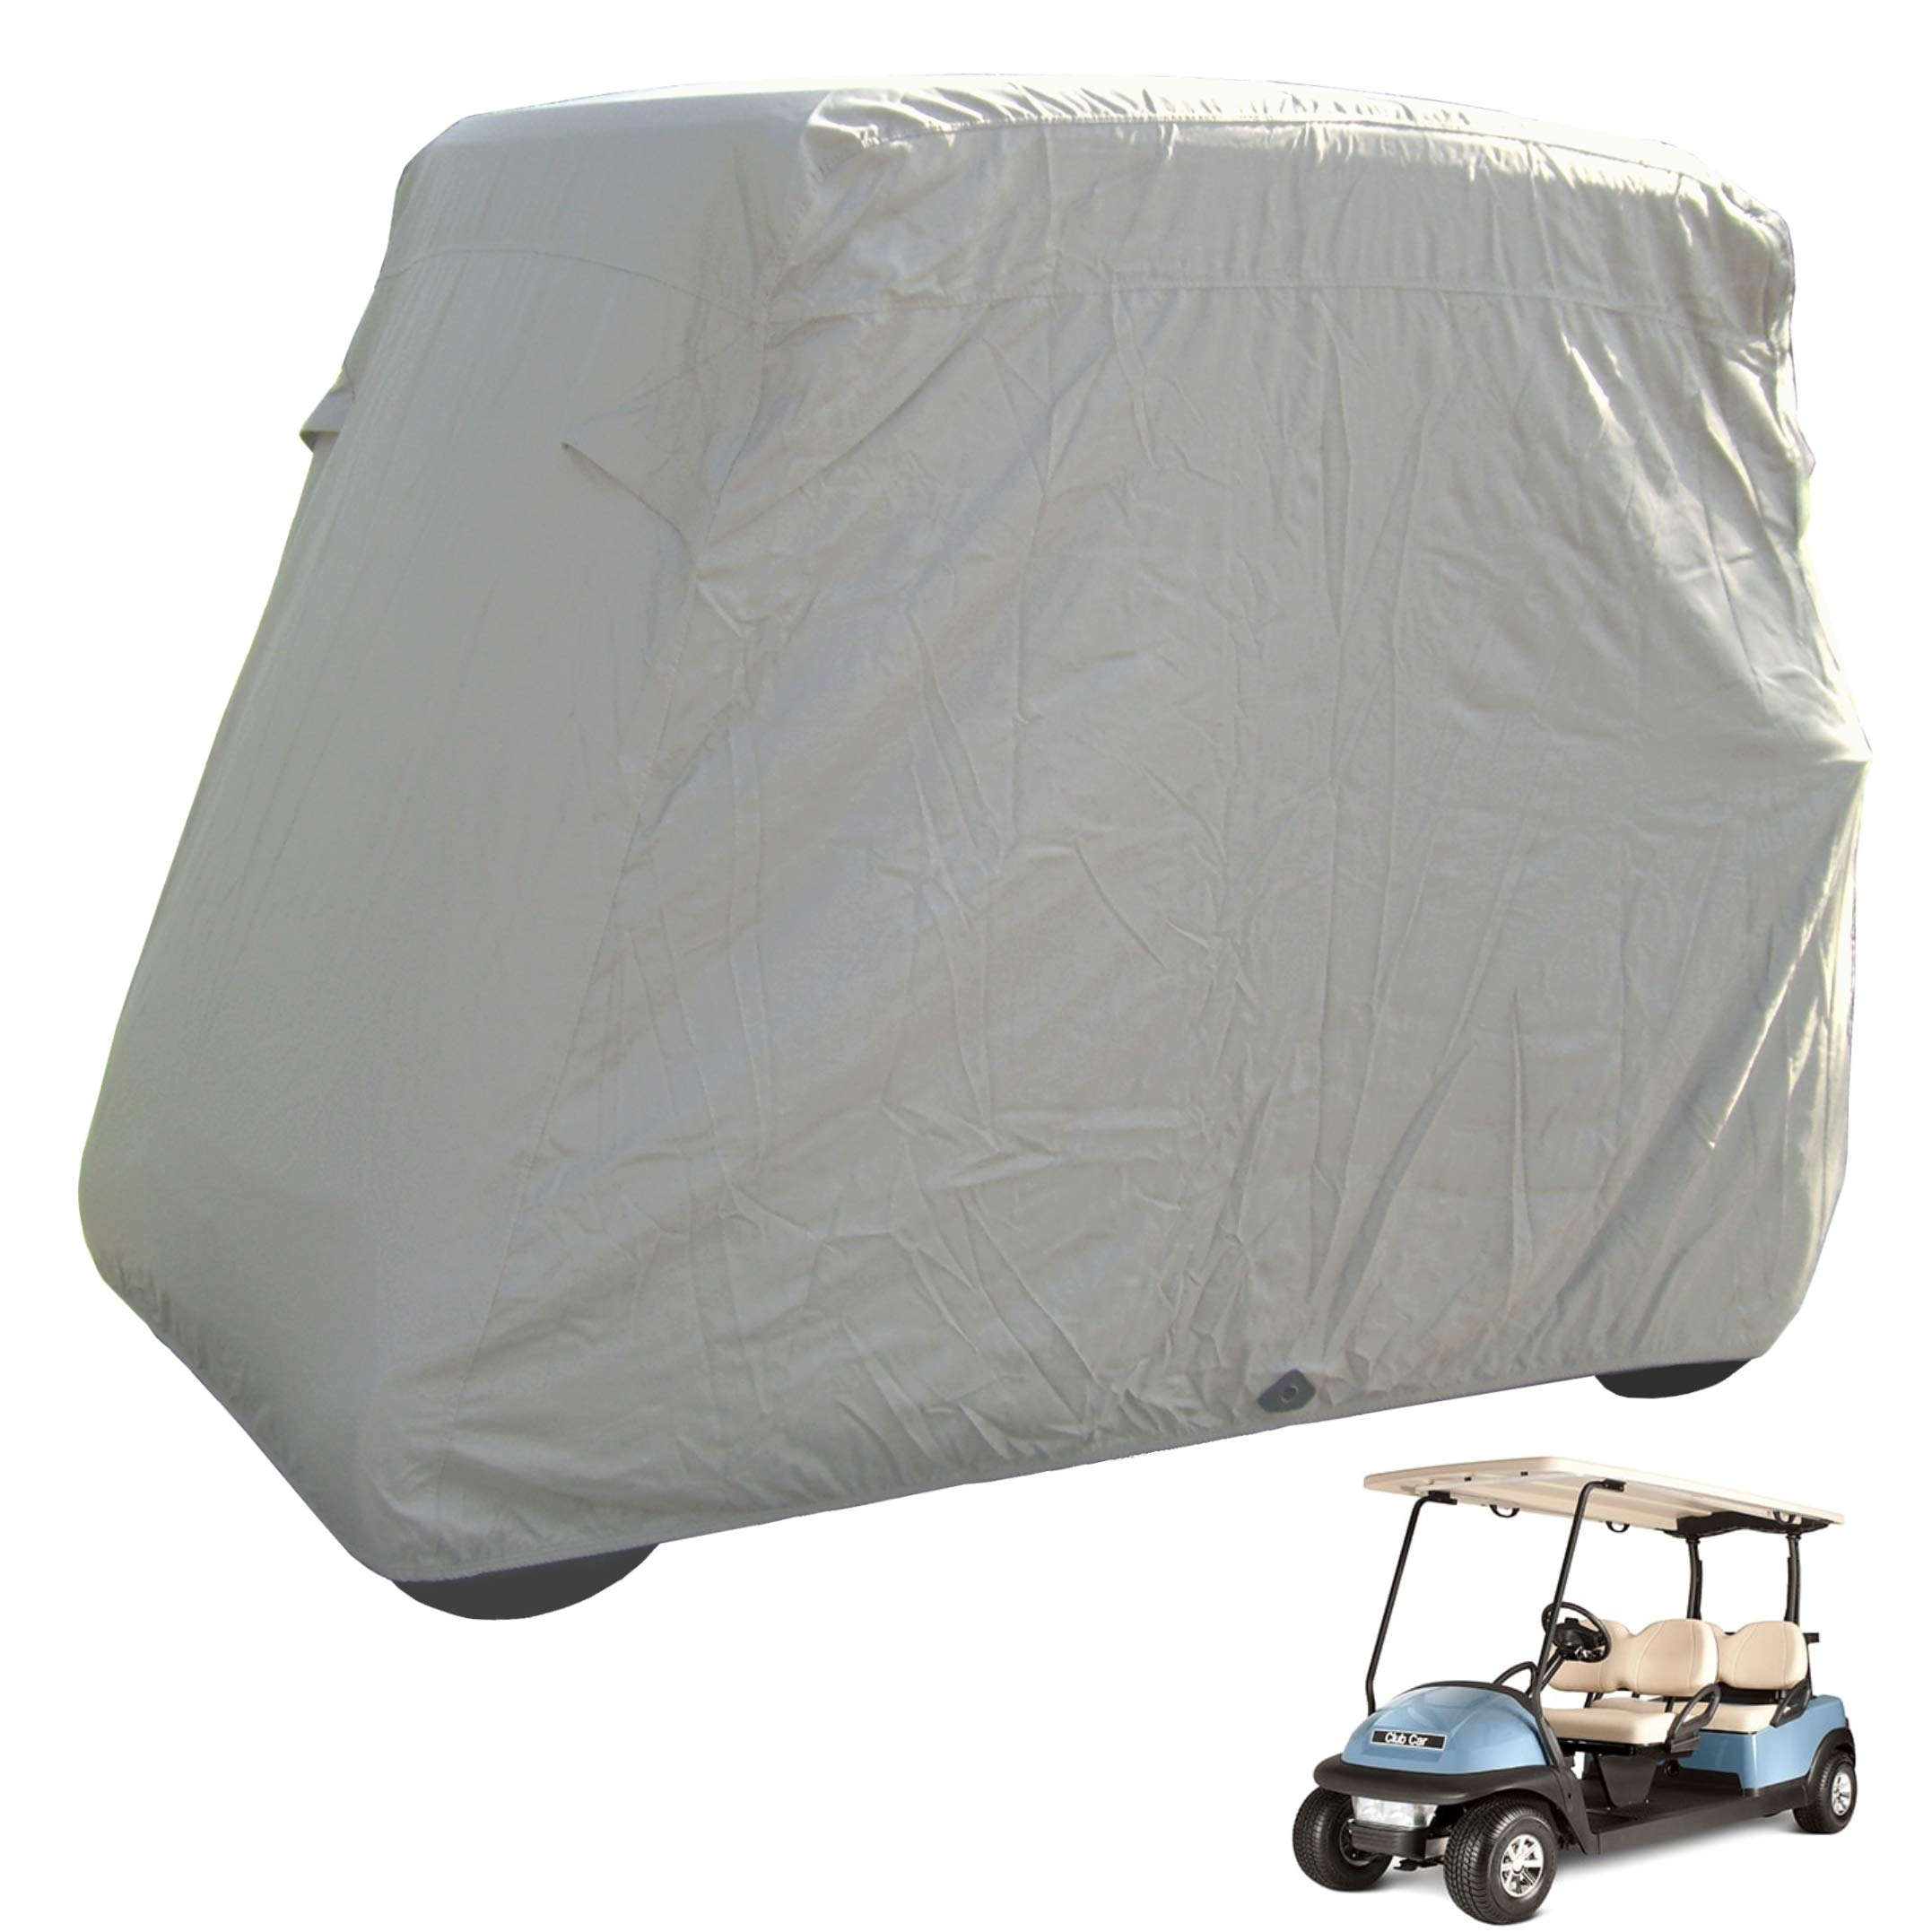 Deluxe 4 Passenger Golf Cart Cover roof 80'' L Taupe, fits E Z GO, Club Car and Yamaha G Model